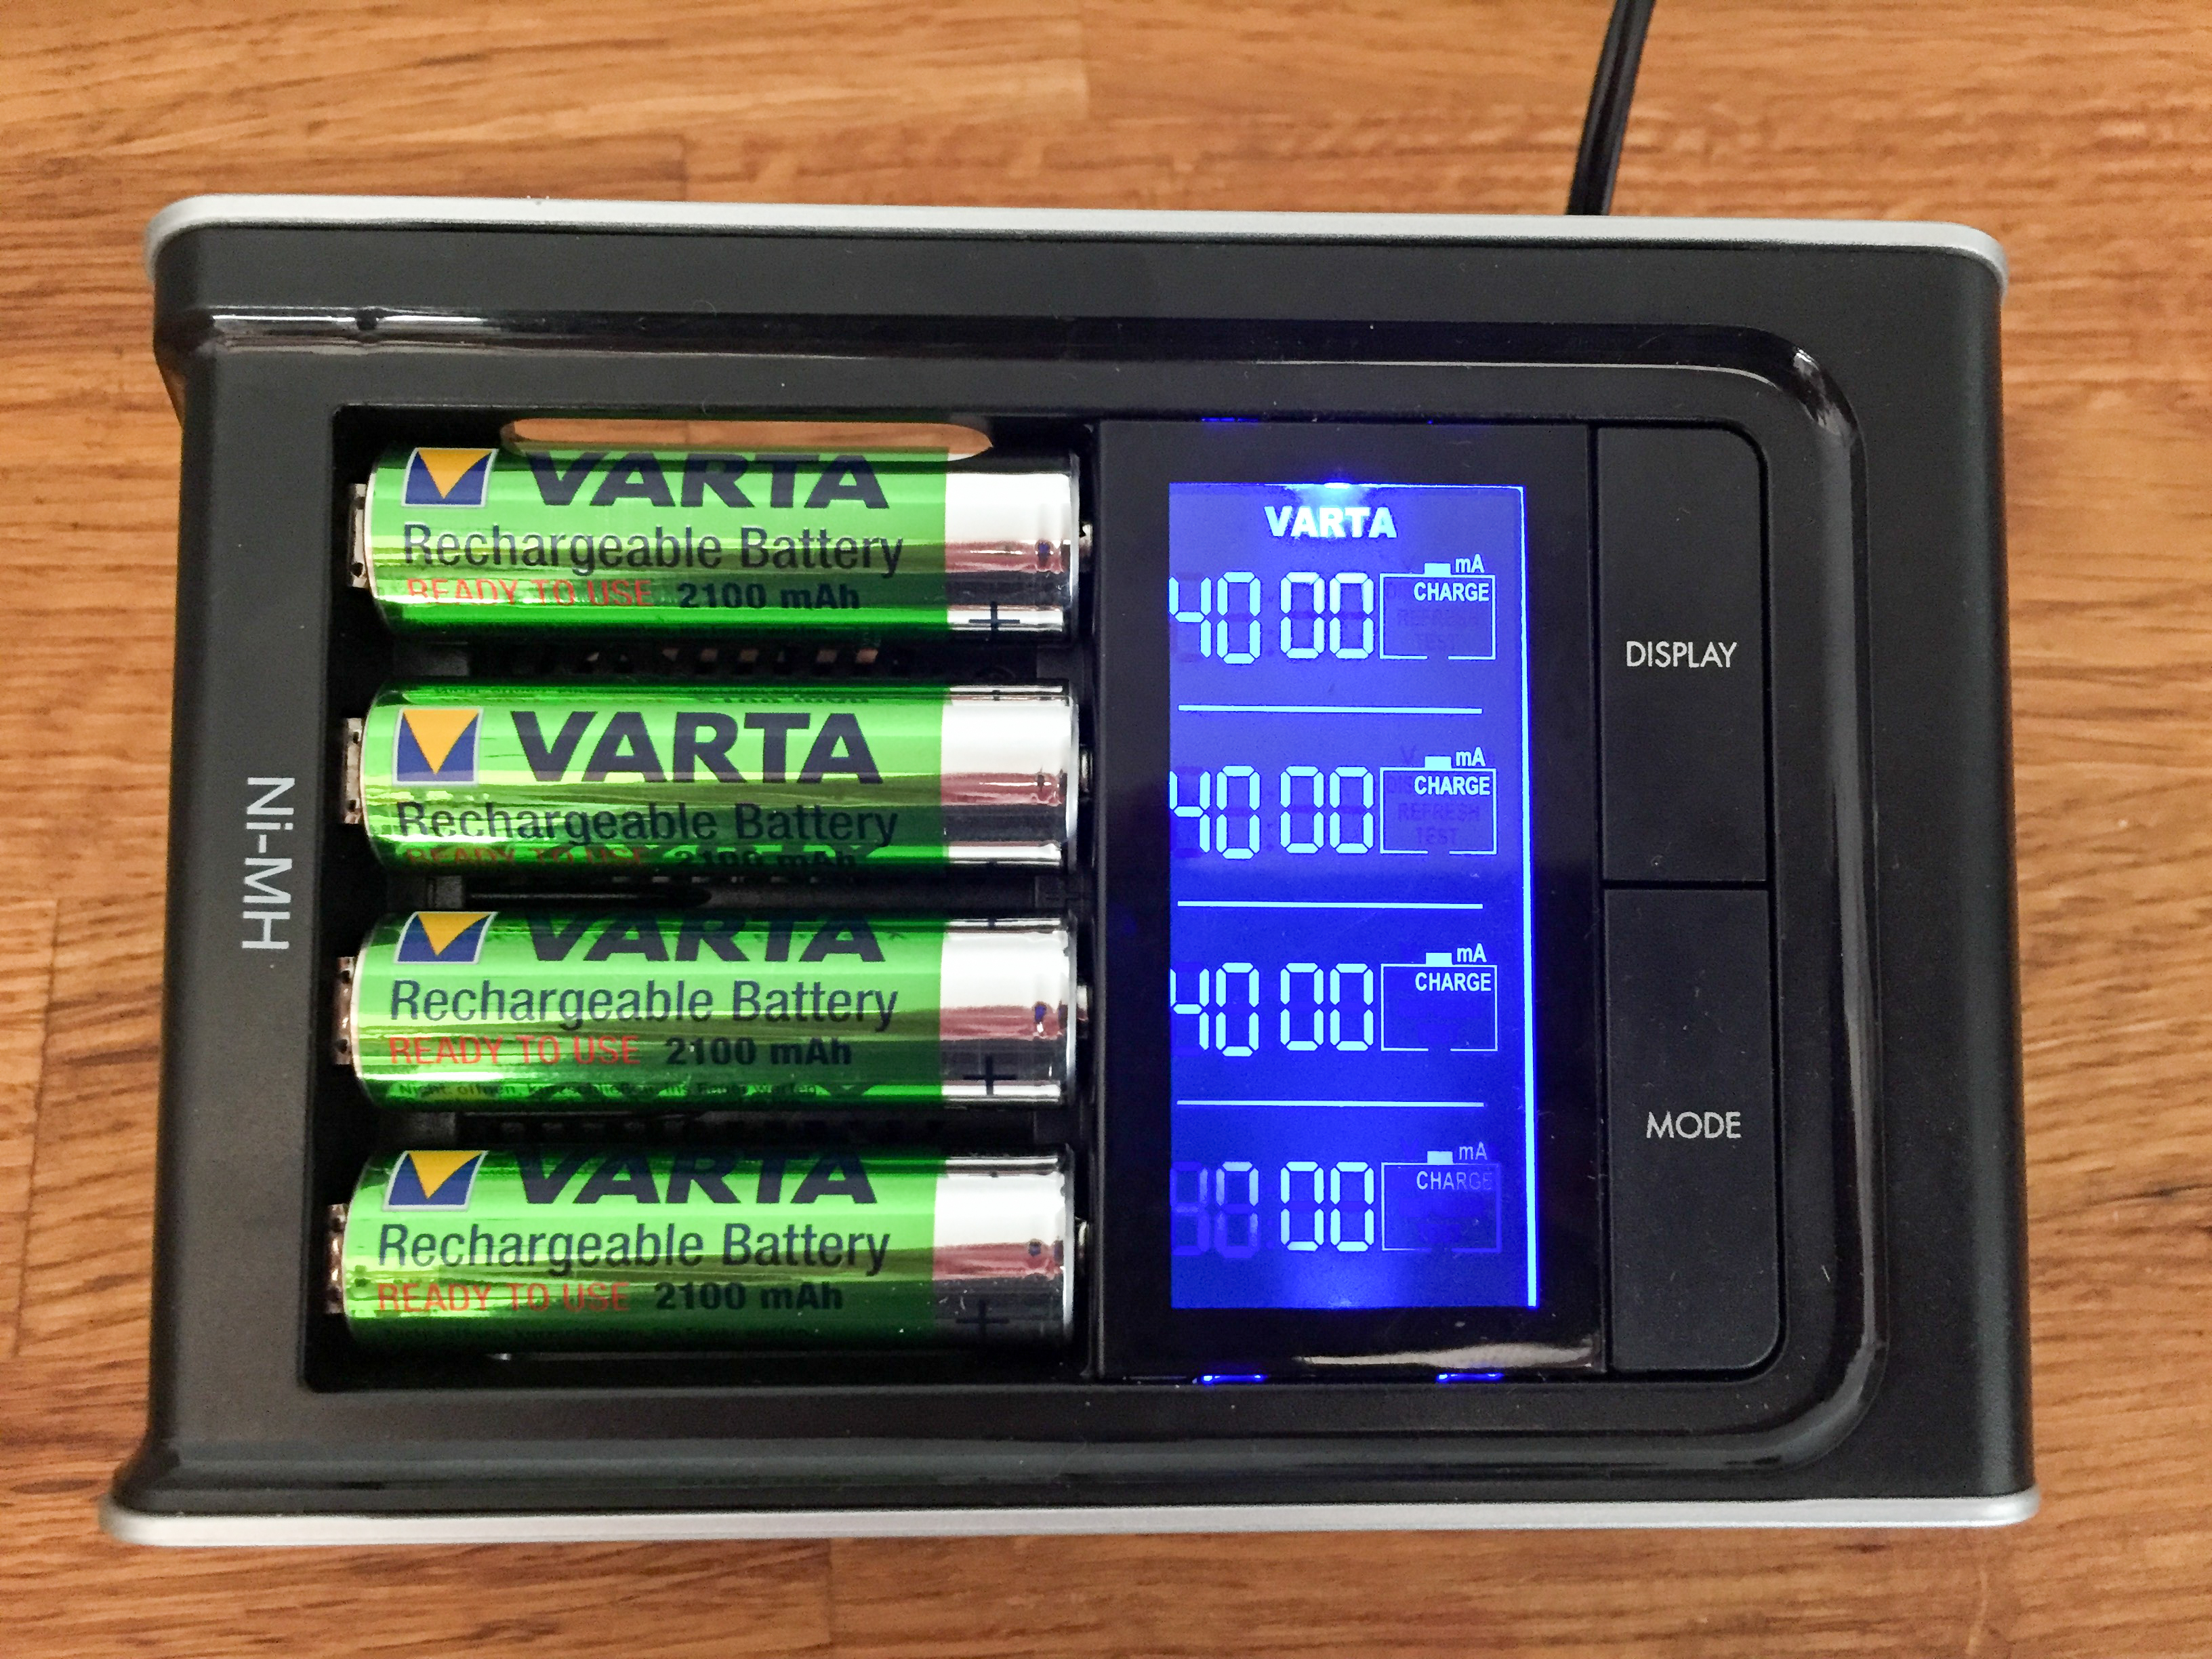 The Ultimate travel charger for your AA batteries